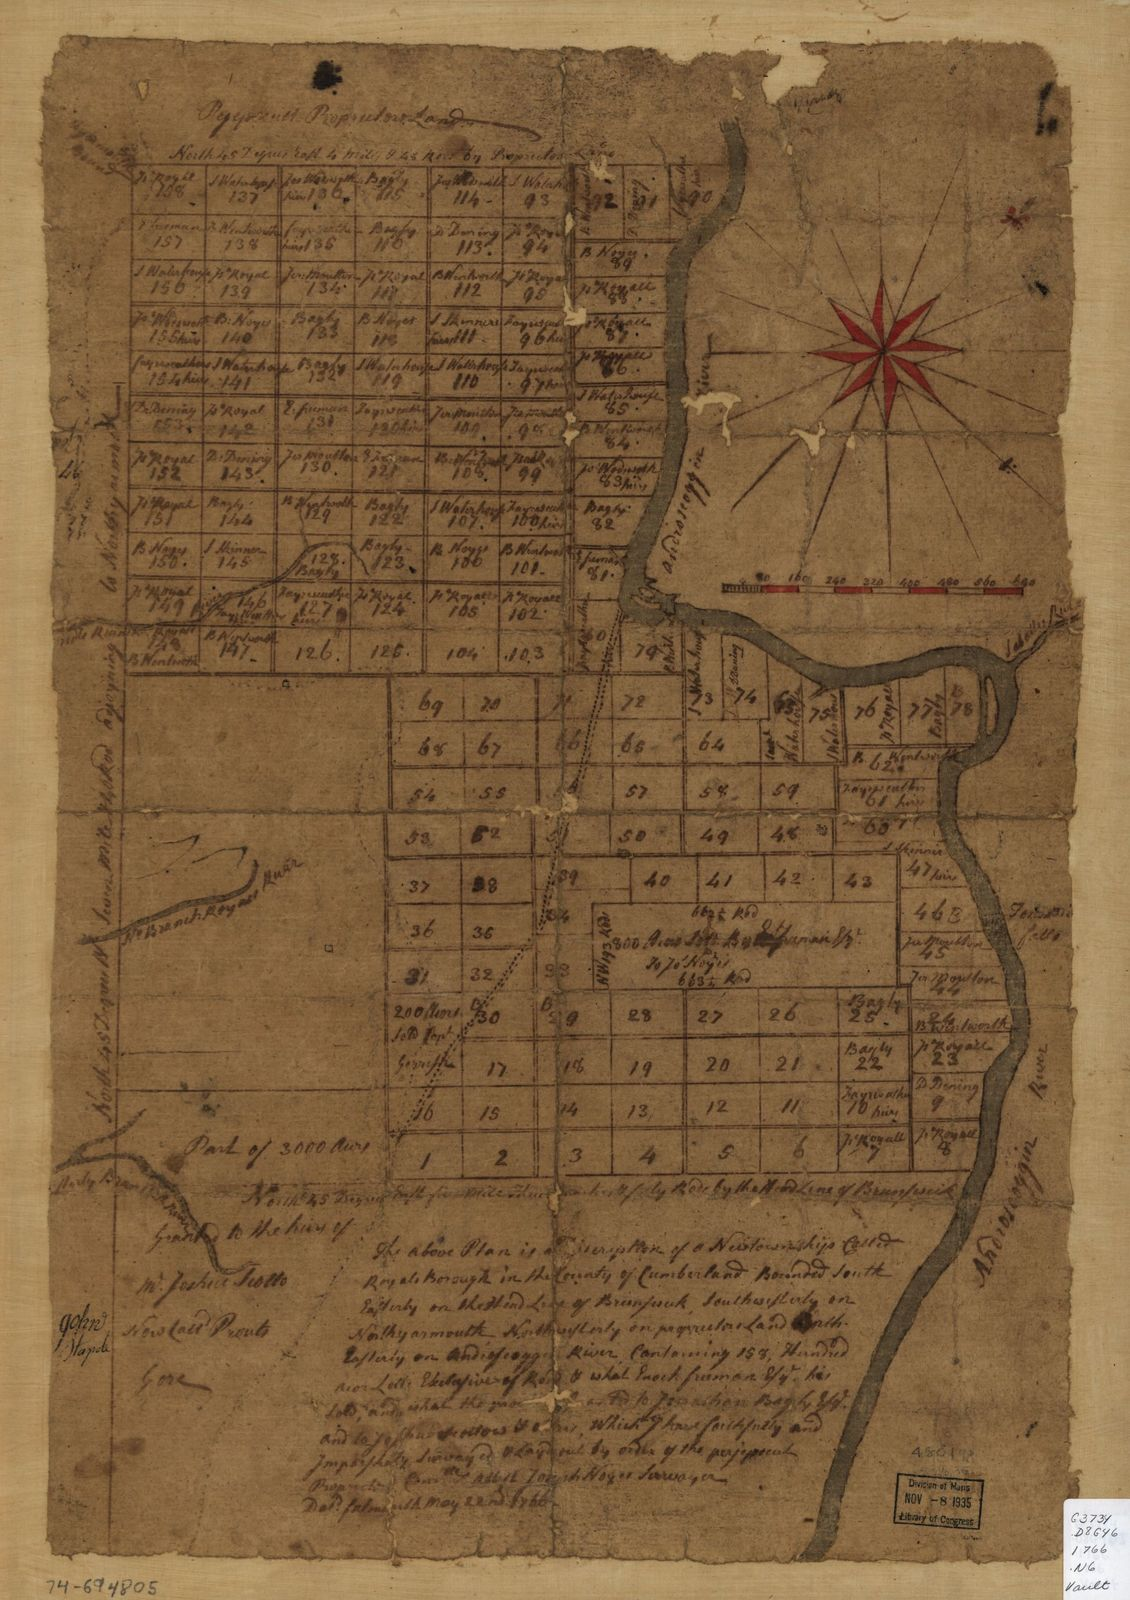 The above plan is a discription of a new township called Royalsborough in the county of Cumberland, bounded southeasterly on the headline of Brunswick, southwesterly on Northyarmouth, northwesterly on proprietors land, northeasterly on Androscoggin River ...